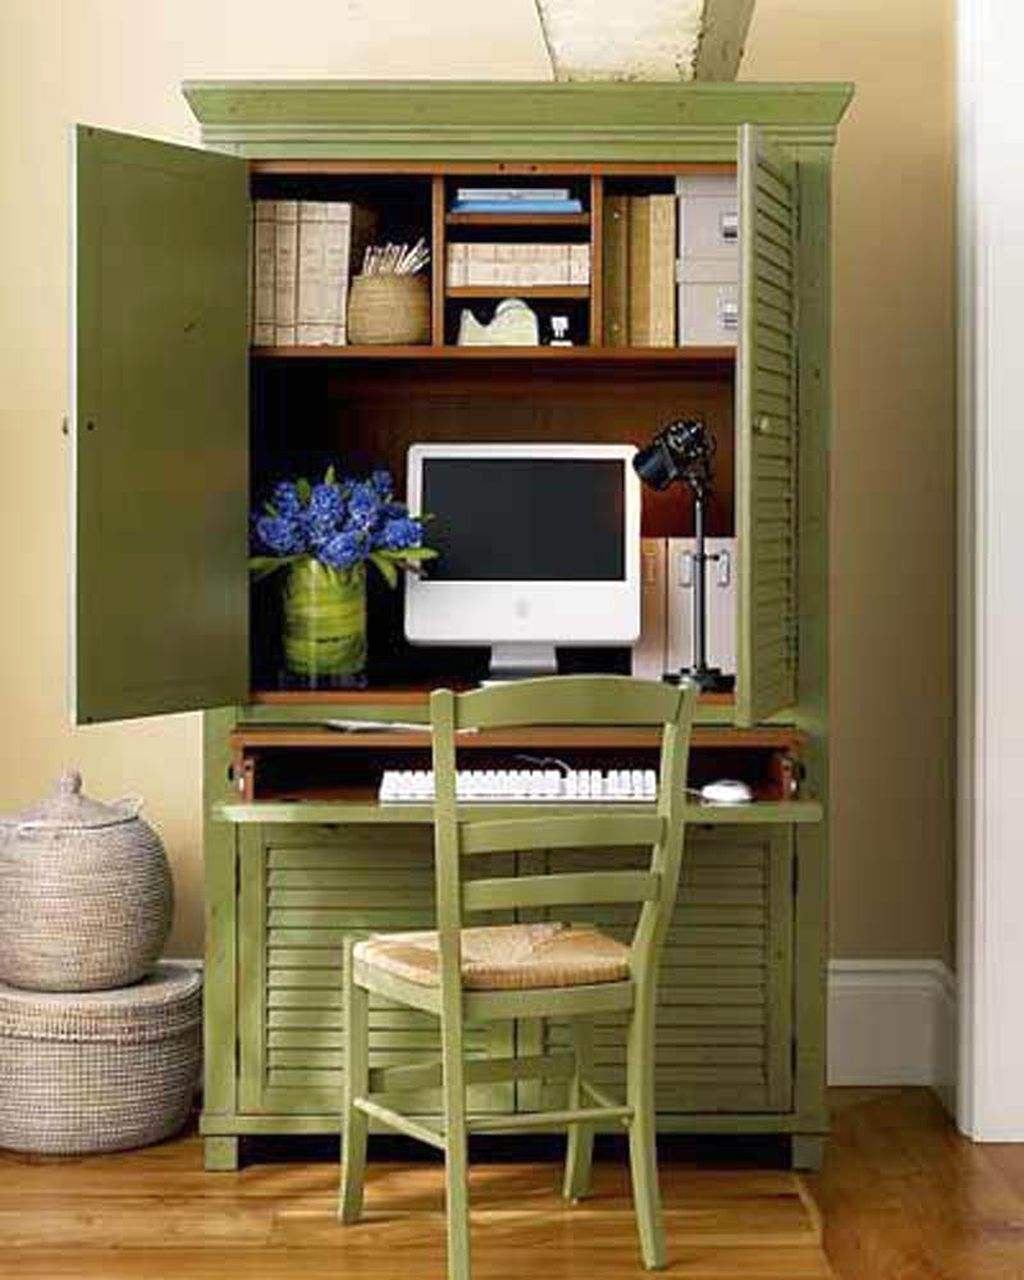 Green cupboard home office design ideas for small spaces for Home decor ideas for small apartments